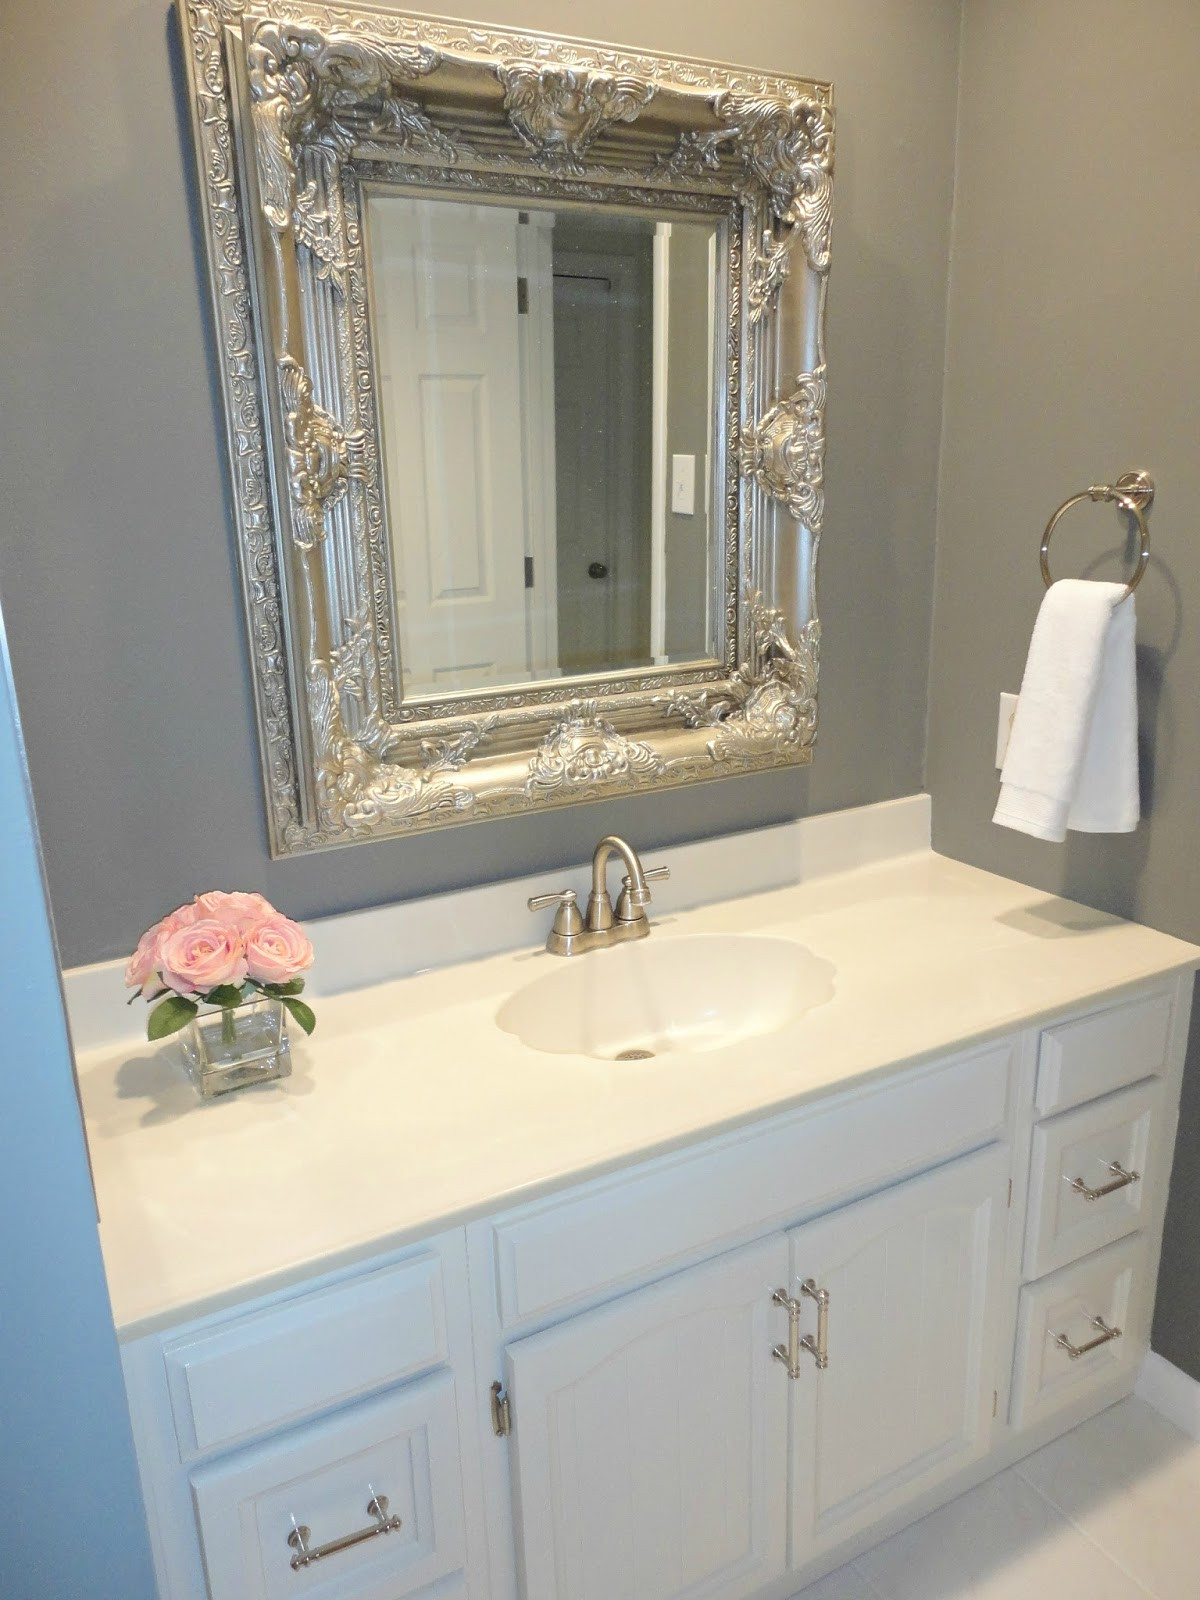 Best ideas about Diy Bathroom Remodel . Save or Pin cheap diy bathroom renovation ideas DIY Bathroom Remodel Now.